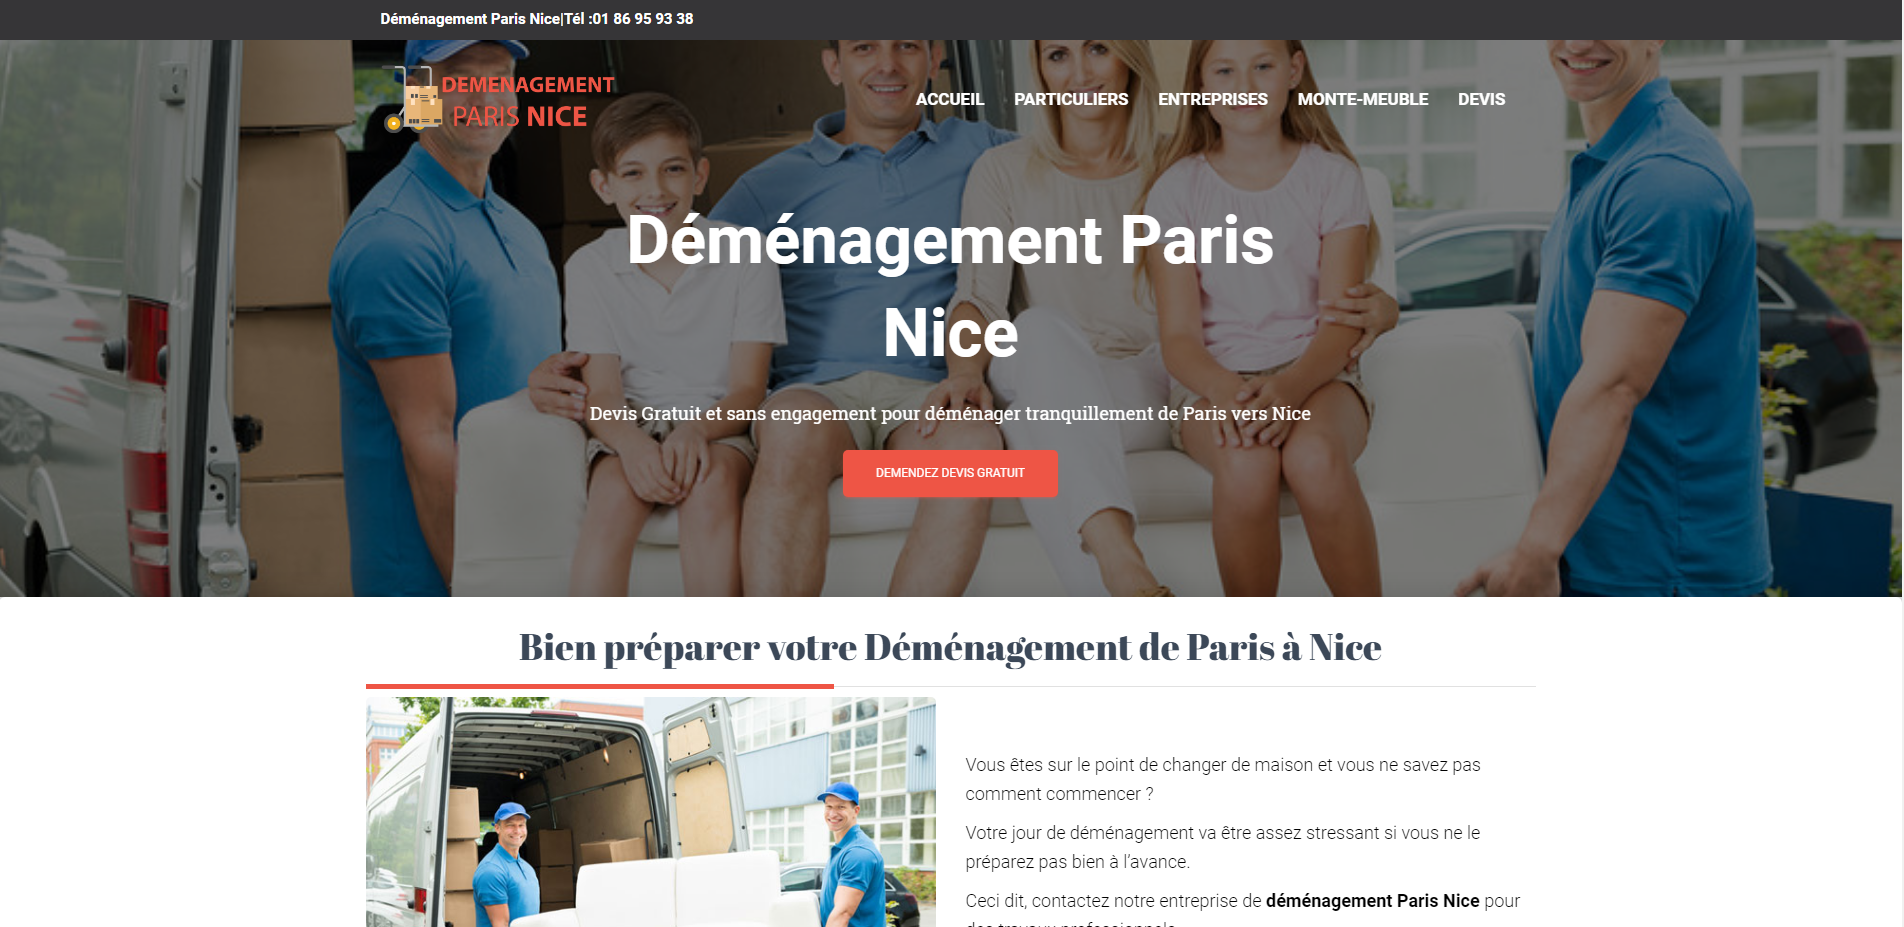 demenagementparis-nice